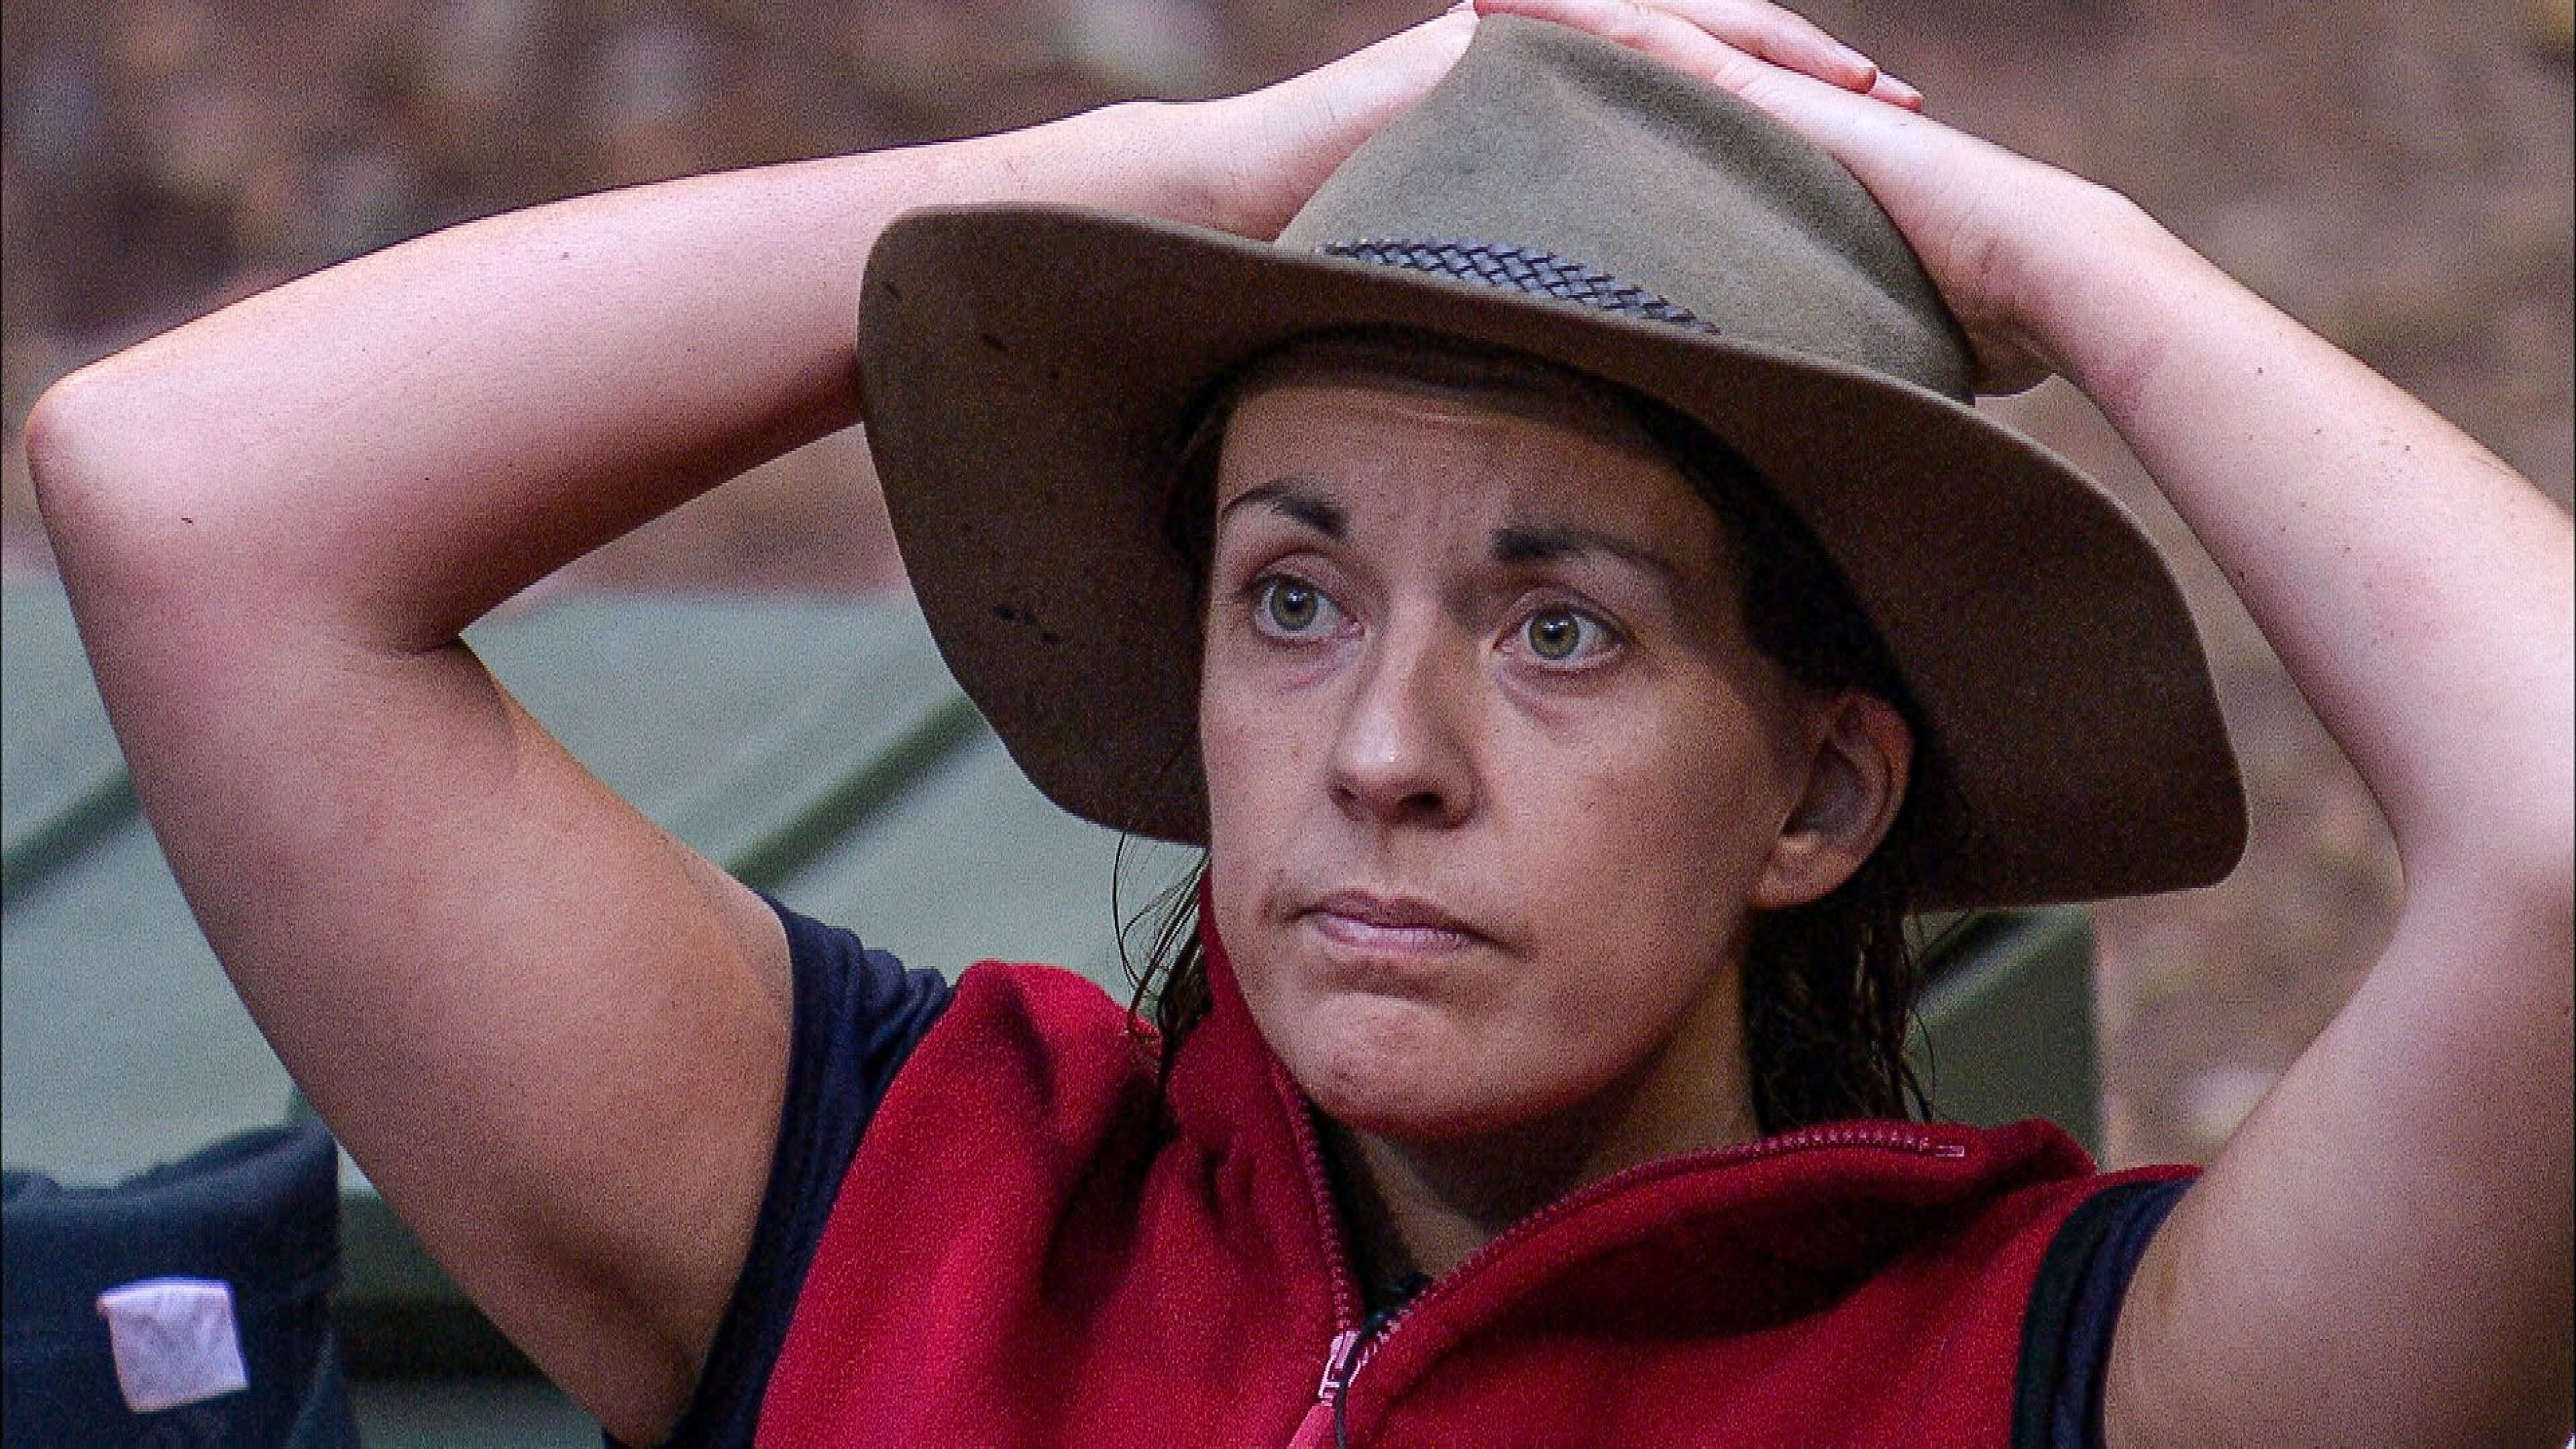 Kezia Dugdale Receives 'Warning' From Labour Party Following 'I'm A Celebrity' Appearance